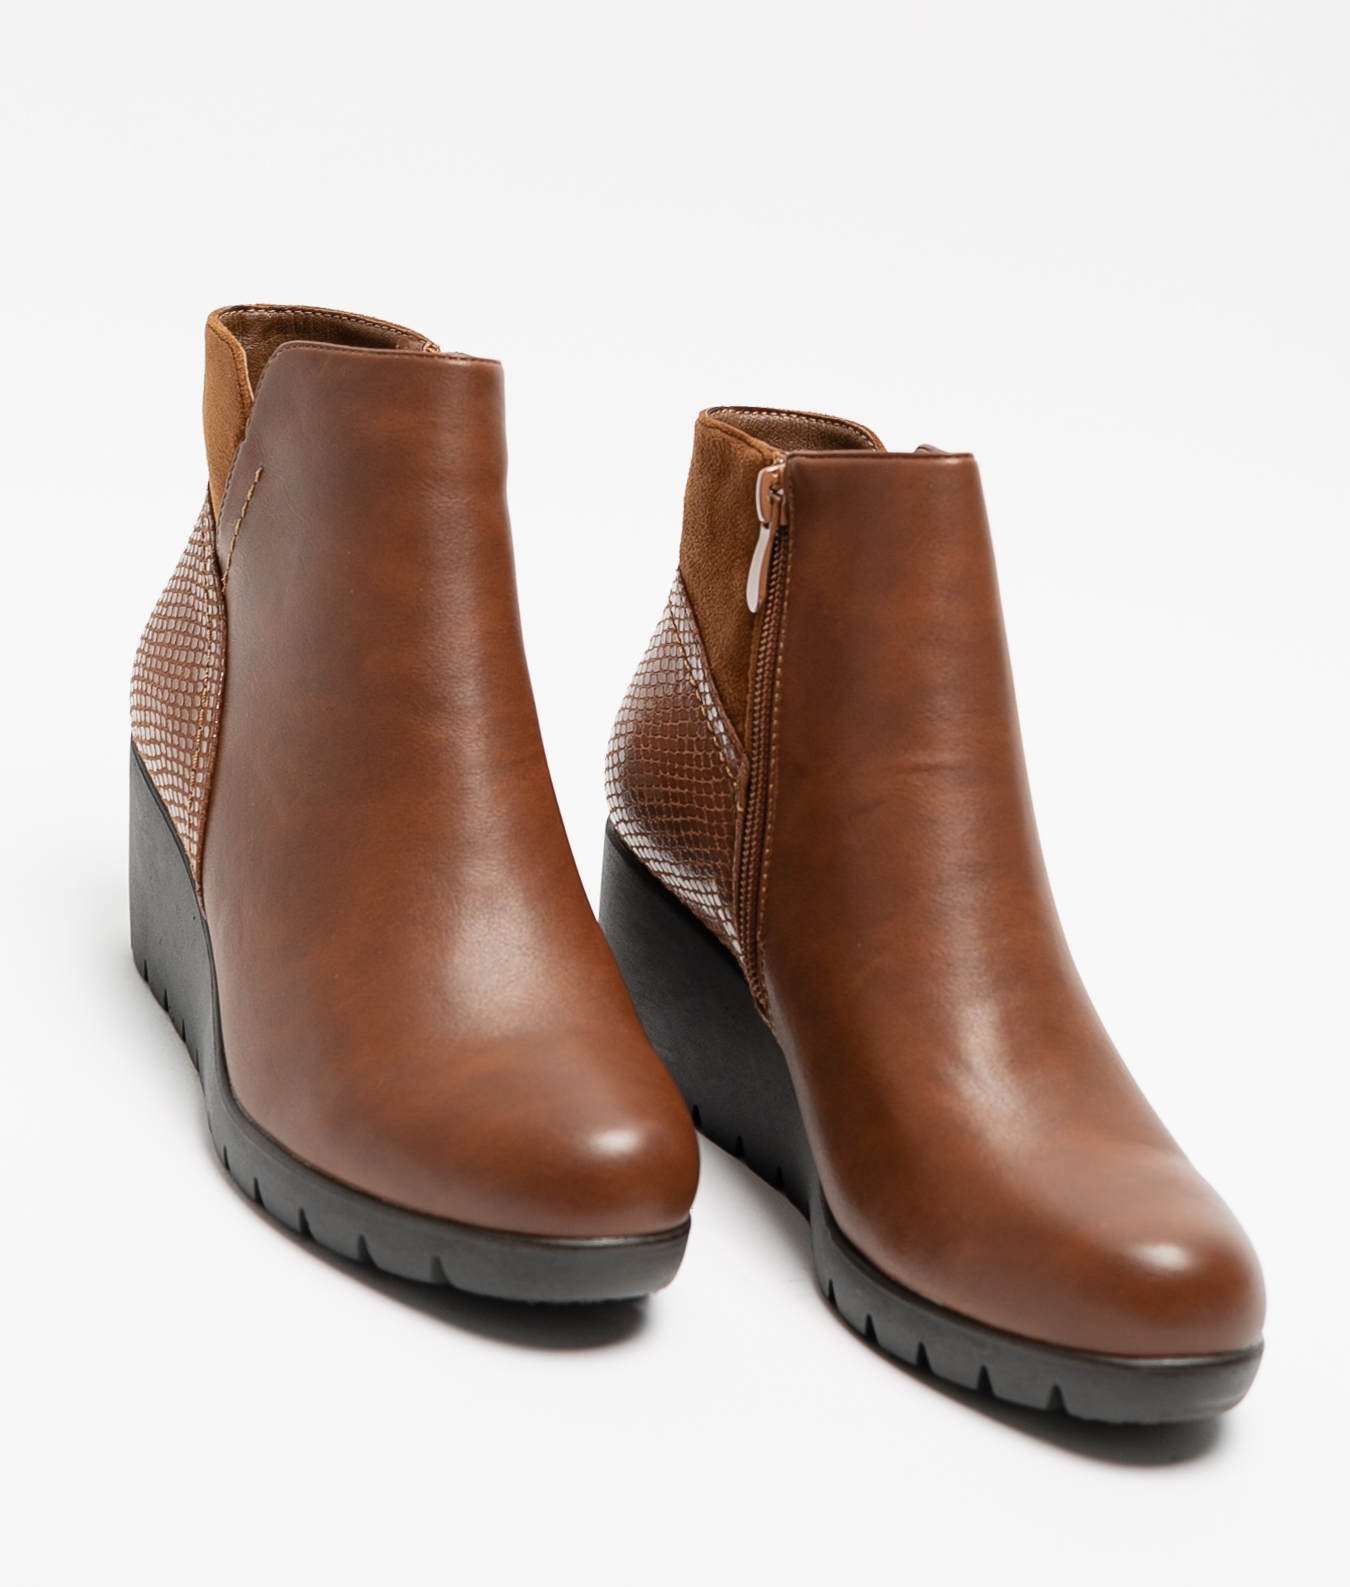 Trudy Low Boot - Camel